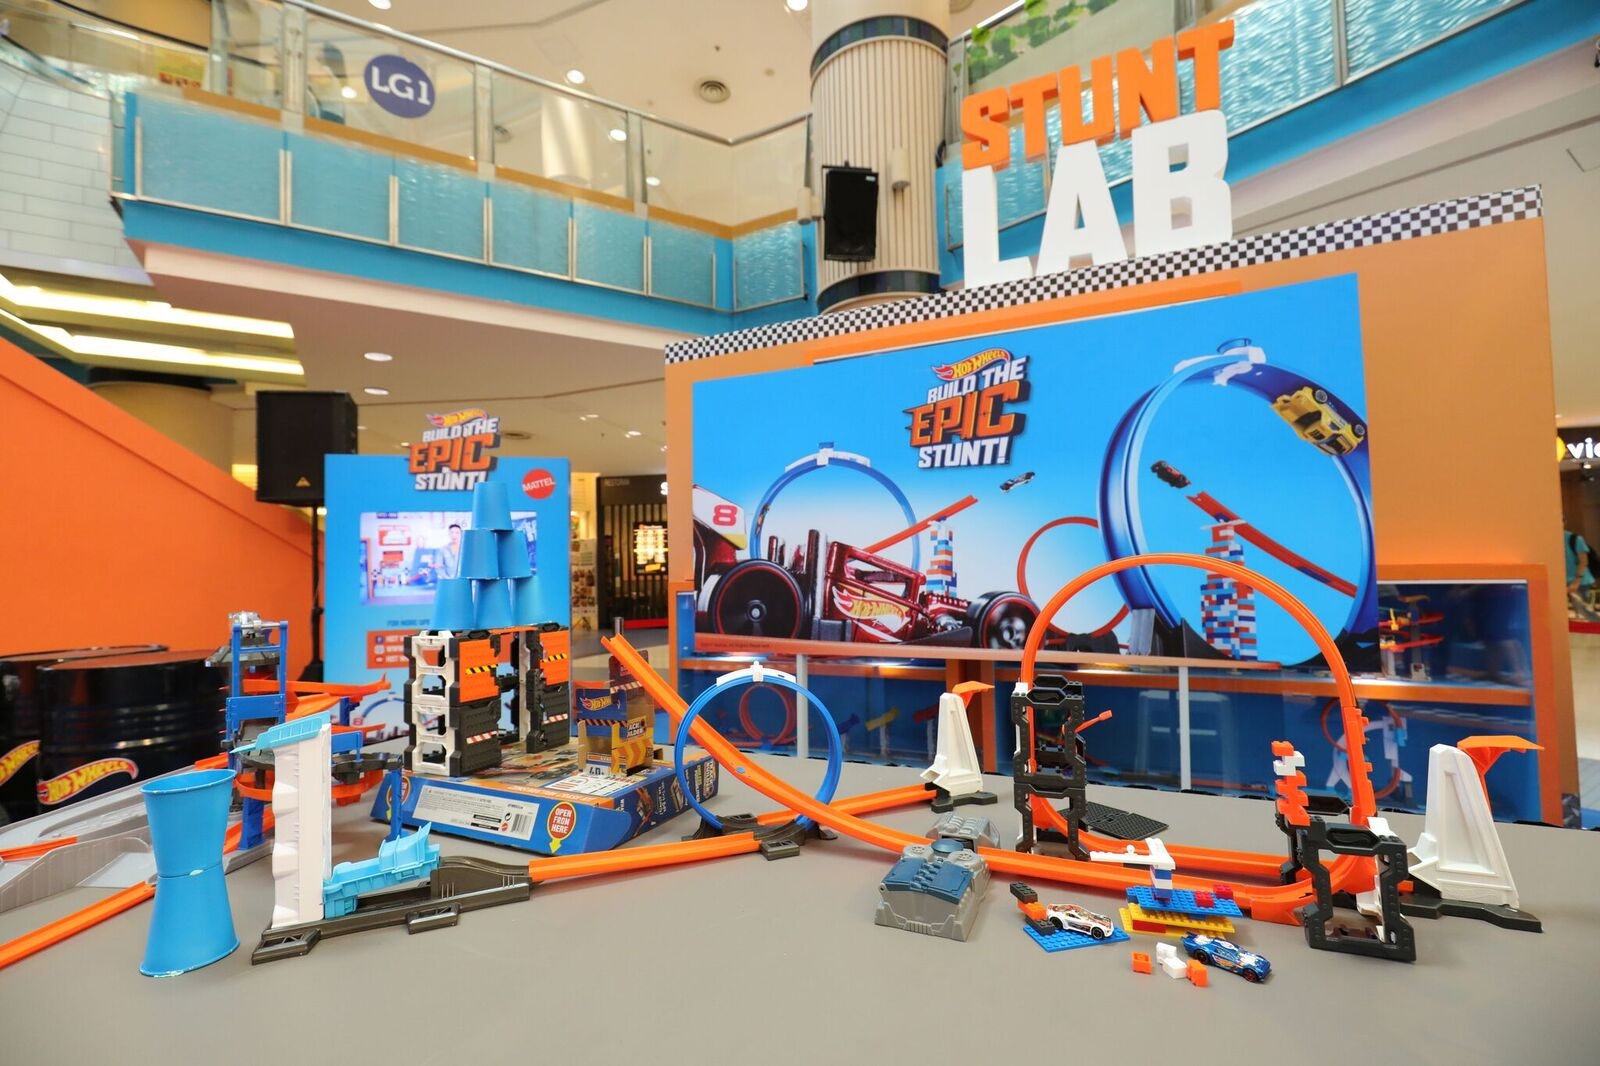 as part of the effort to inspire creativity and experimental play with hot wheels mattel will release a 6 episode web series featuring radio dj and tv